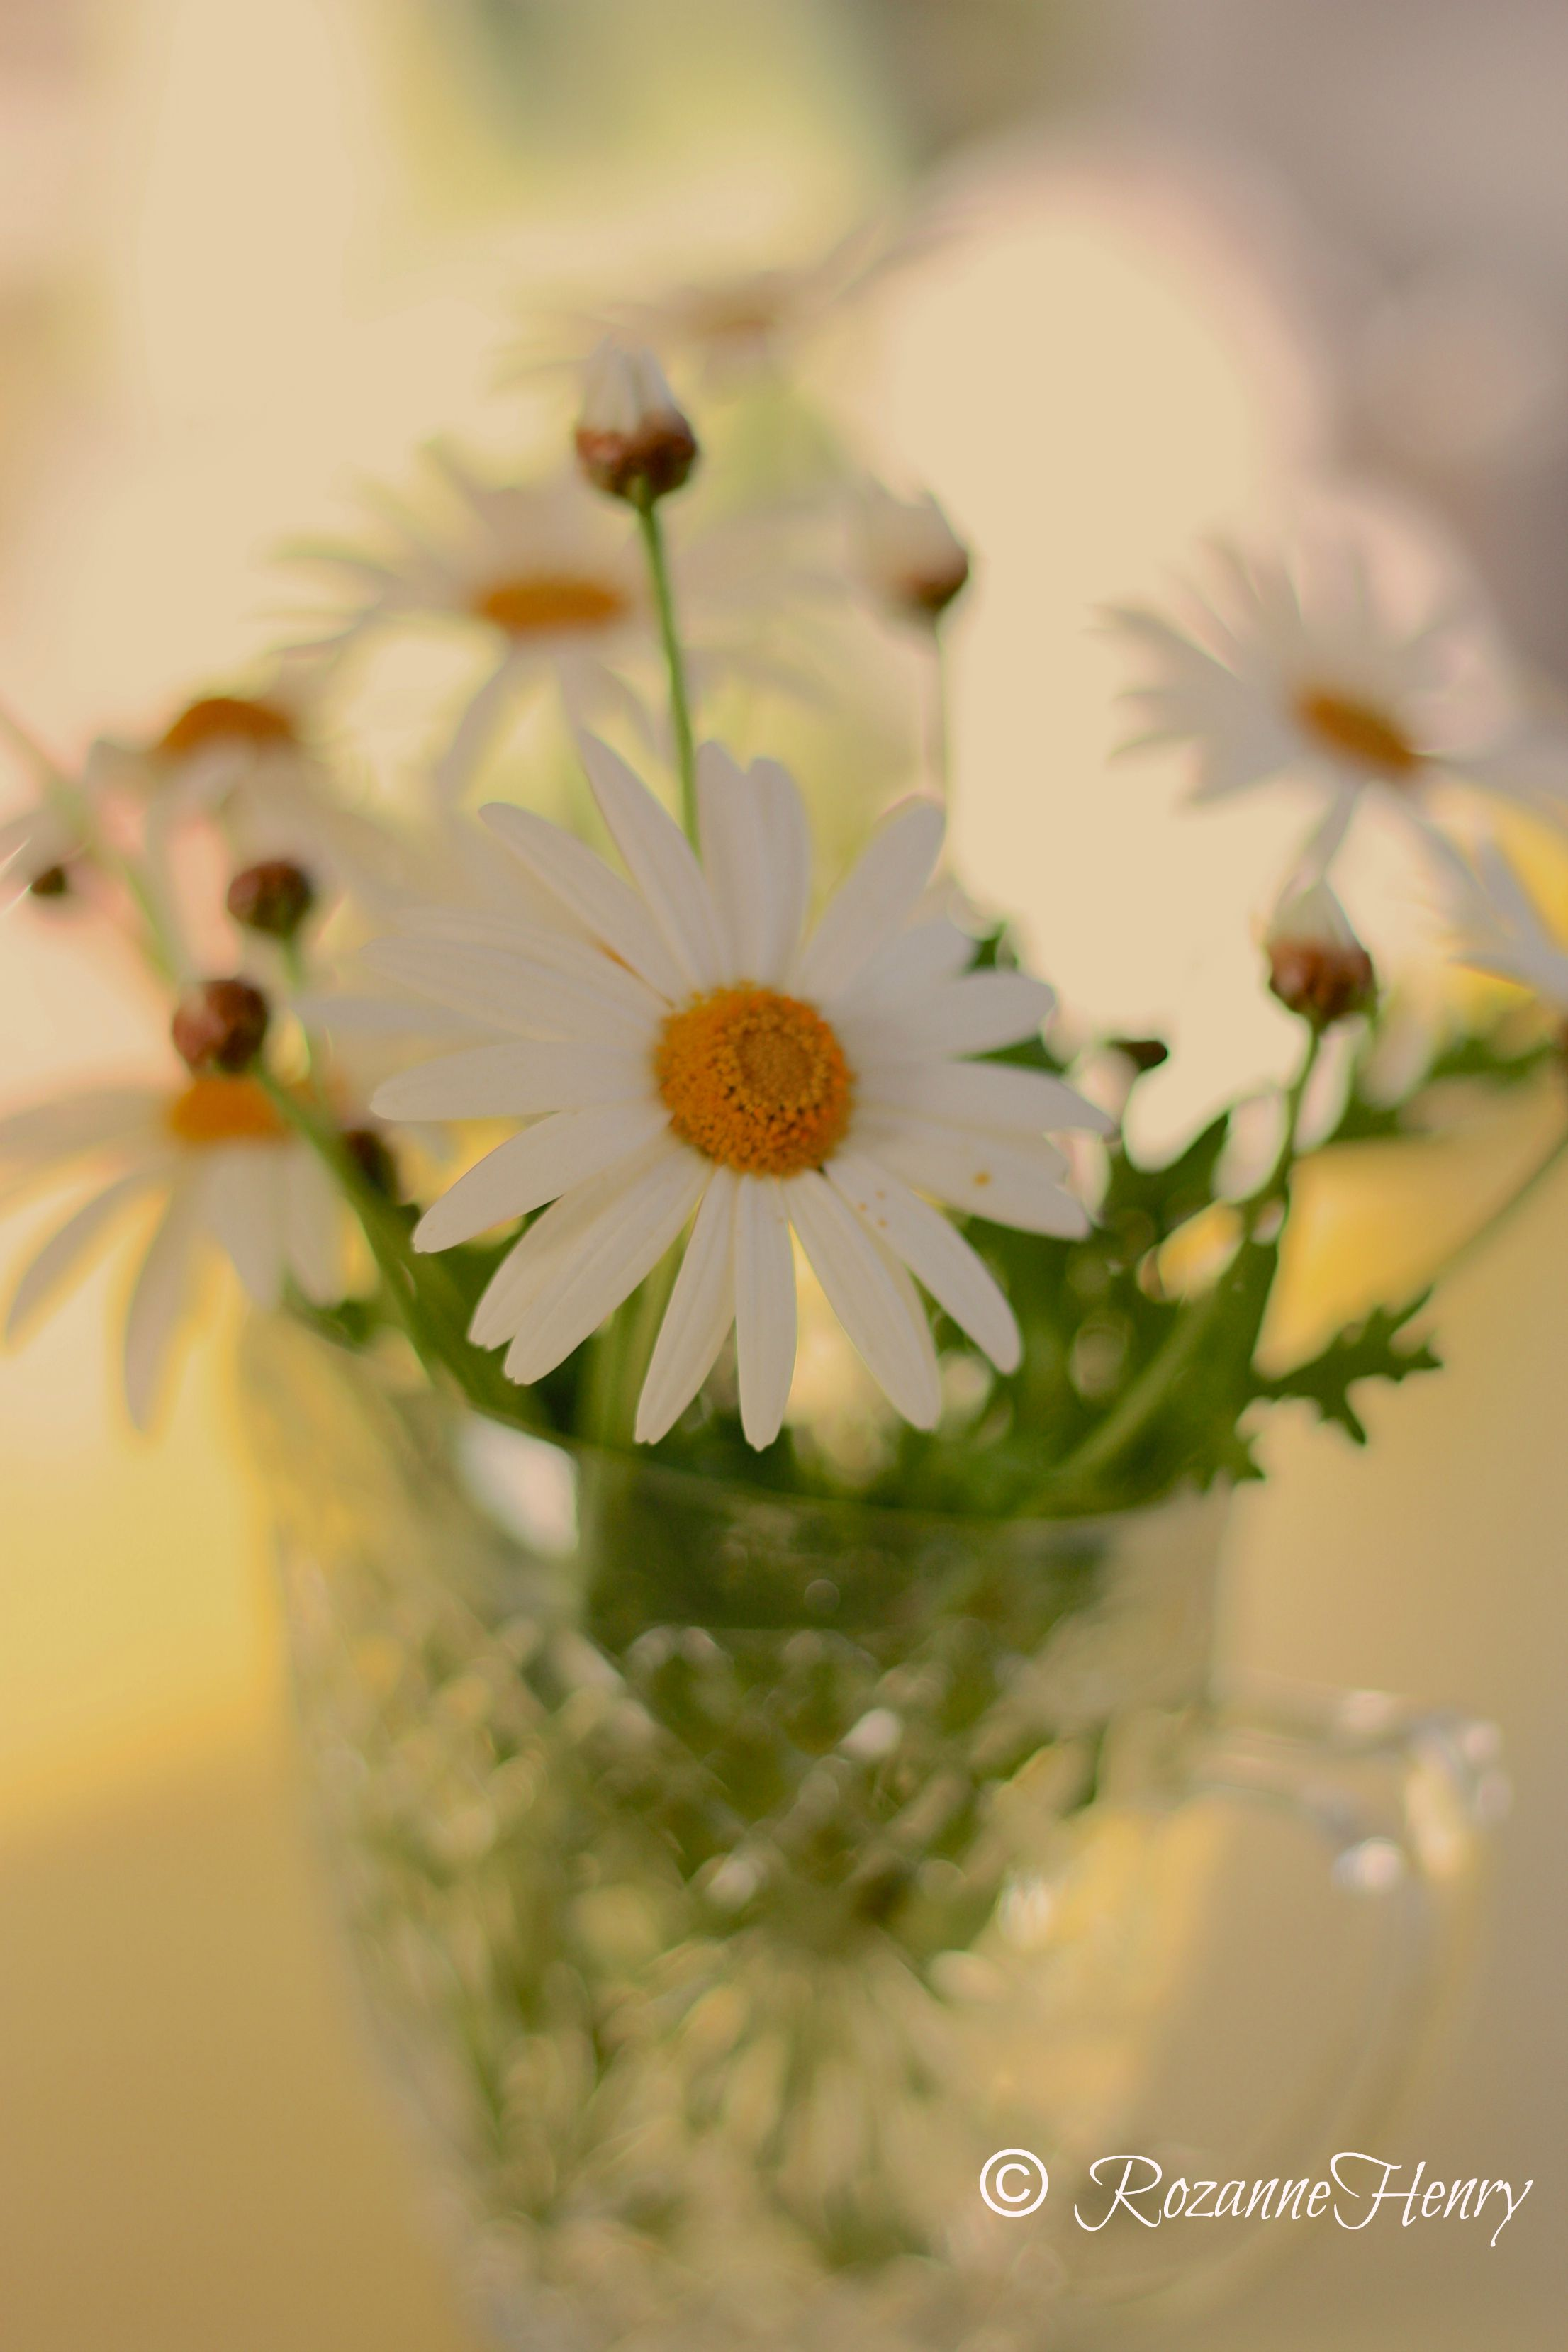 Daisies with name